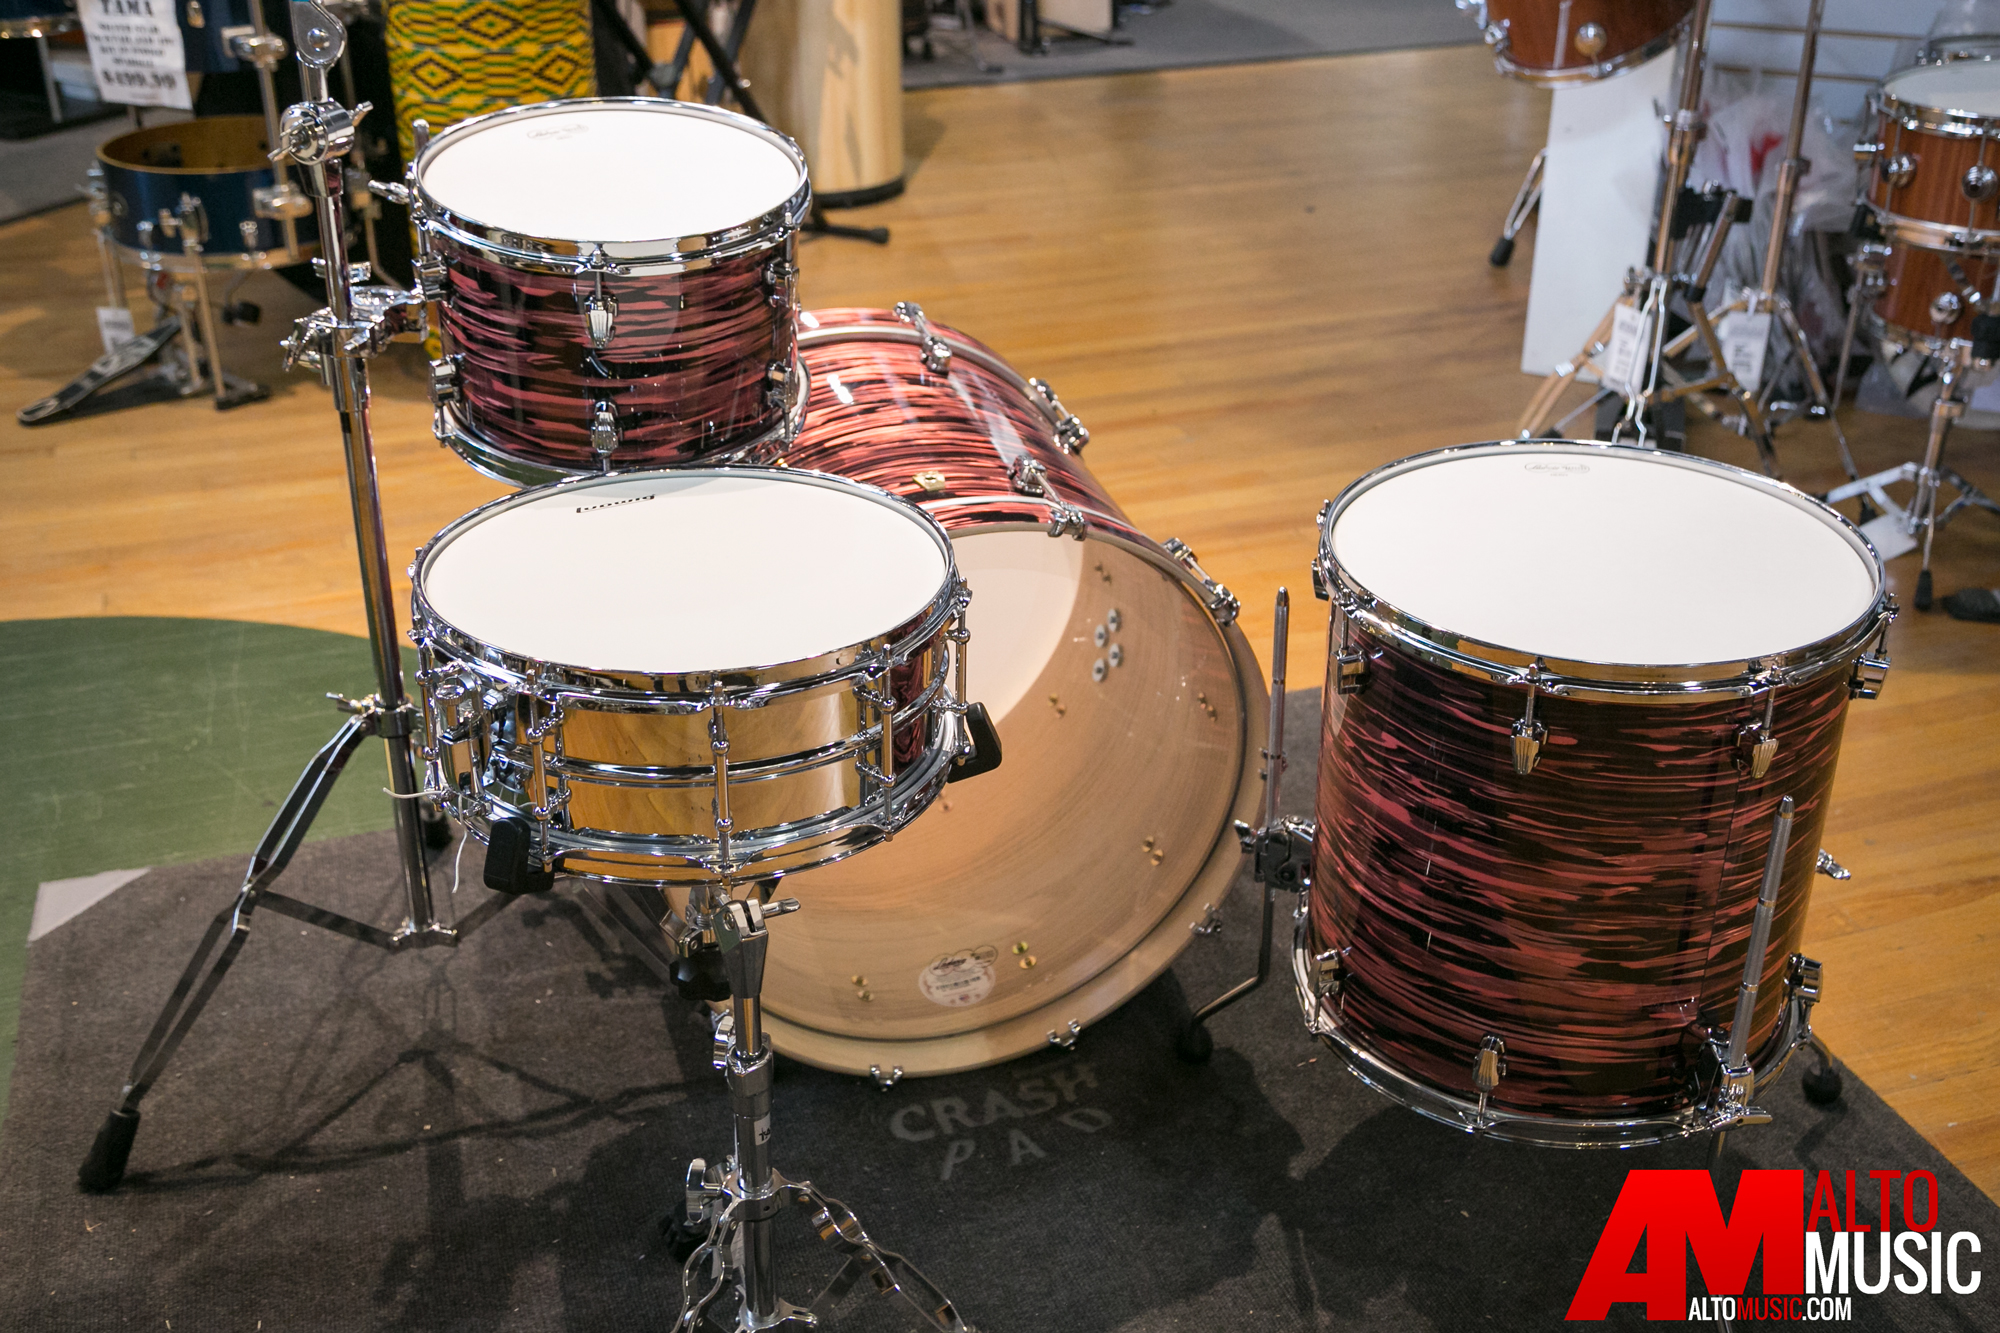 ludwig keystone series shell kit in salmon oyster w free snare drum. Black Bedroom Furniture Sets. Home Design Ideas